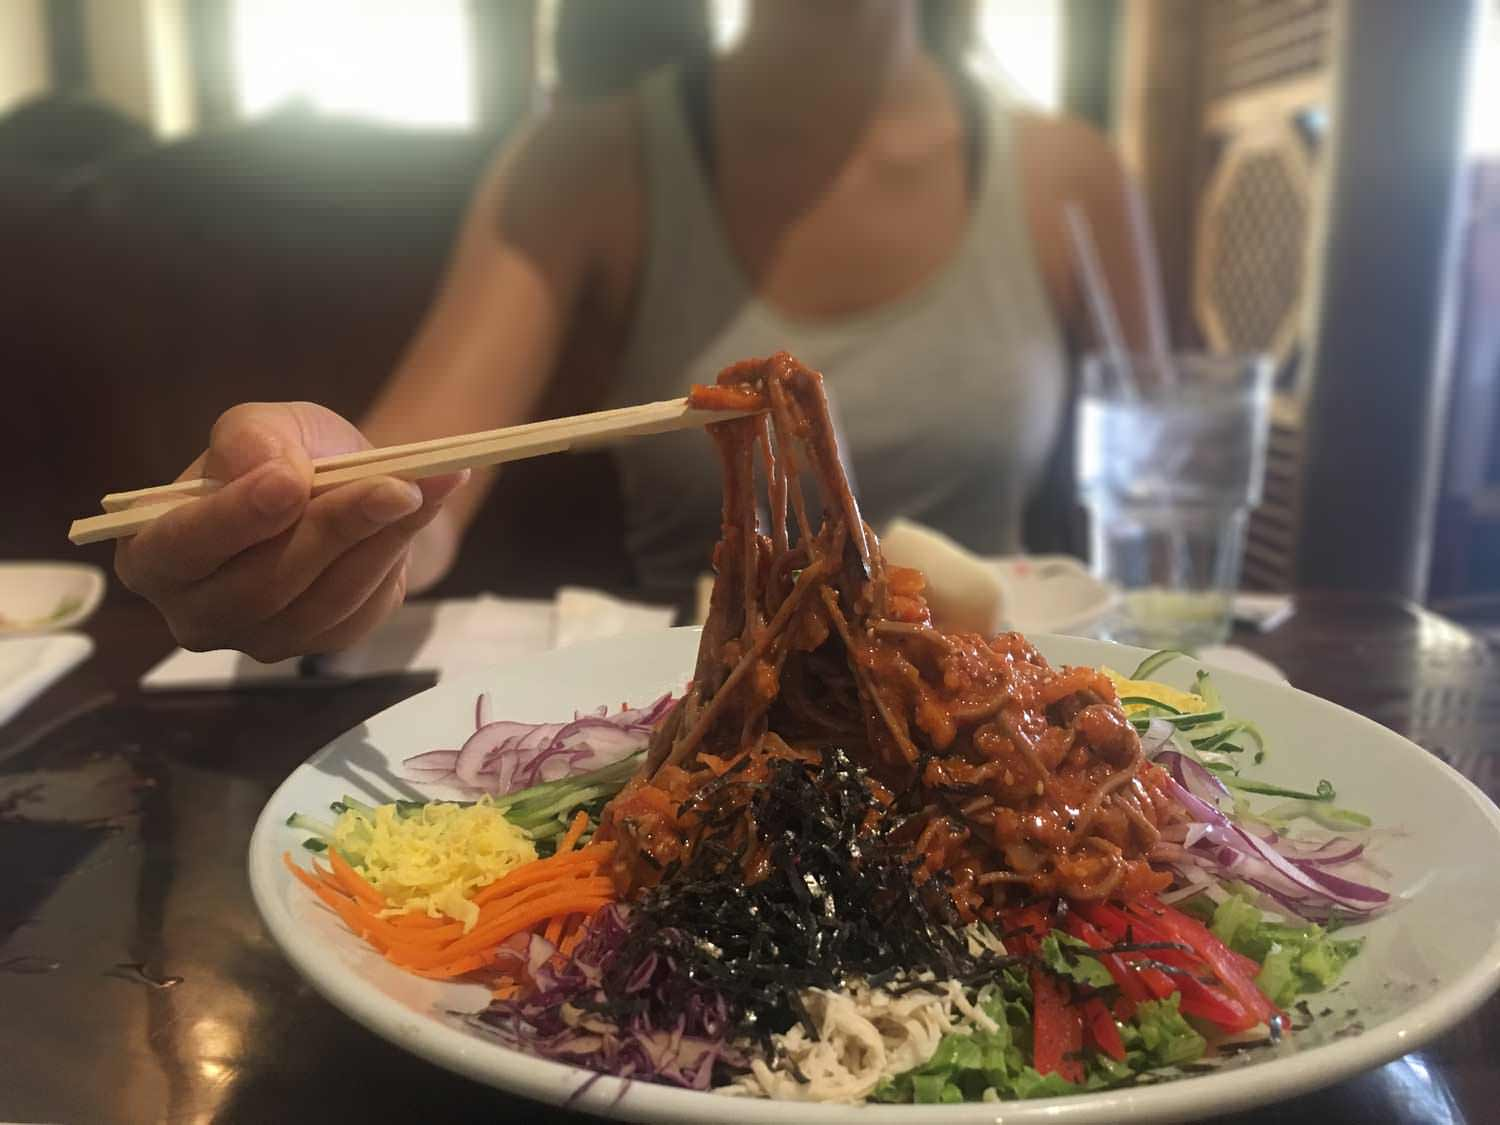 Koreatown Food Tour in Los Angeles